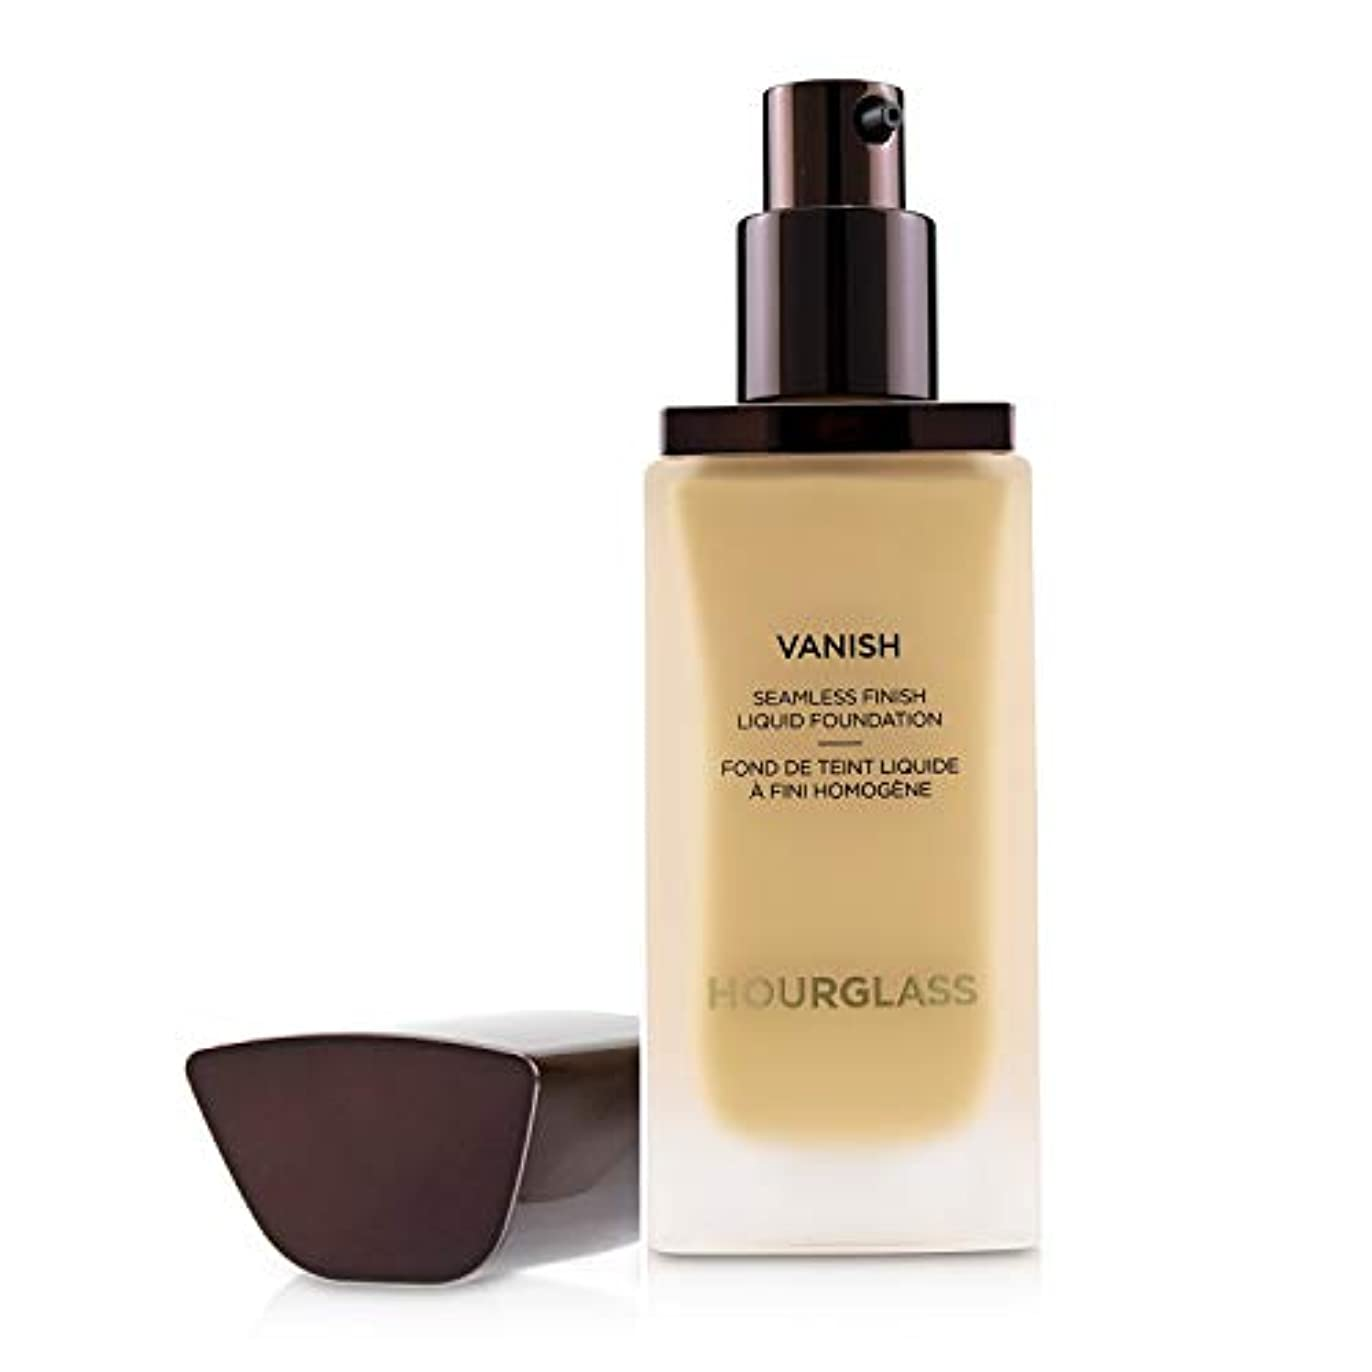 アワーグラス Vanish Seamless Finish Liquid Foundation - # Nude 25ml/0.84oz並行輸入品